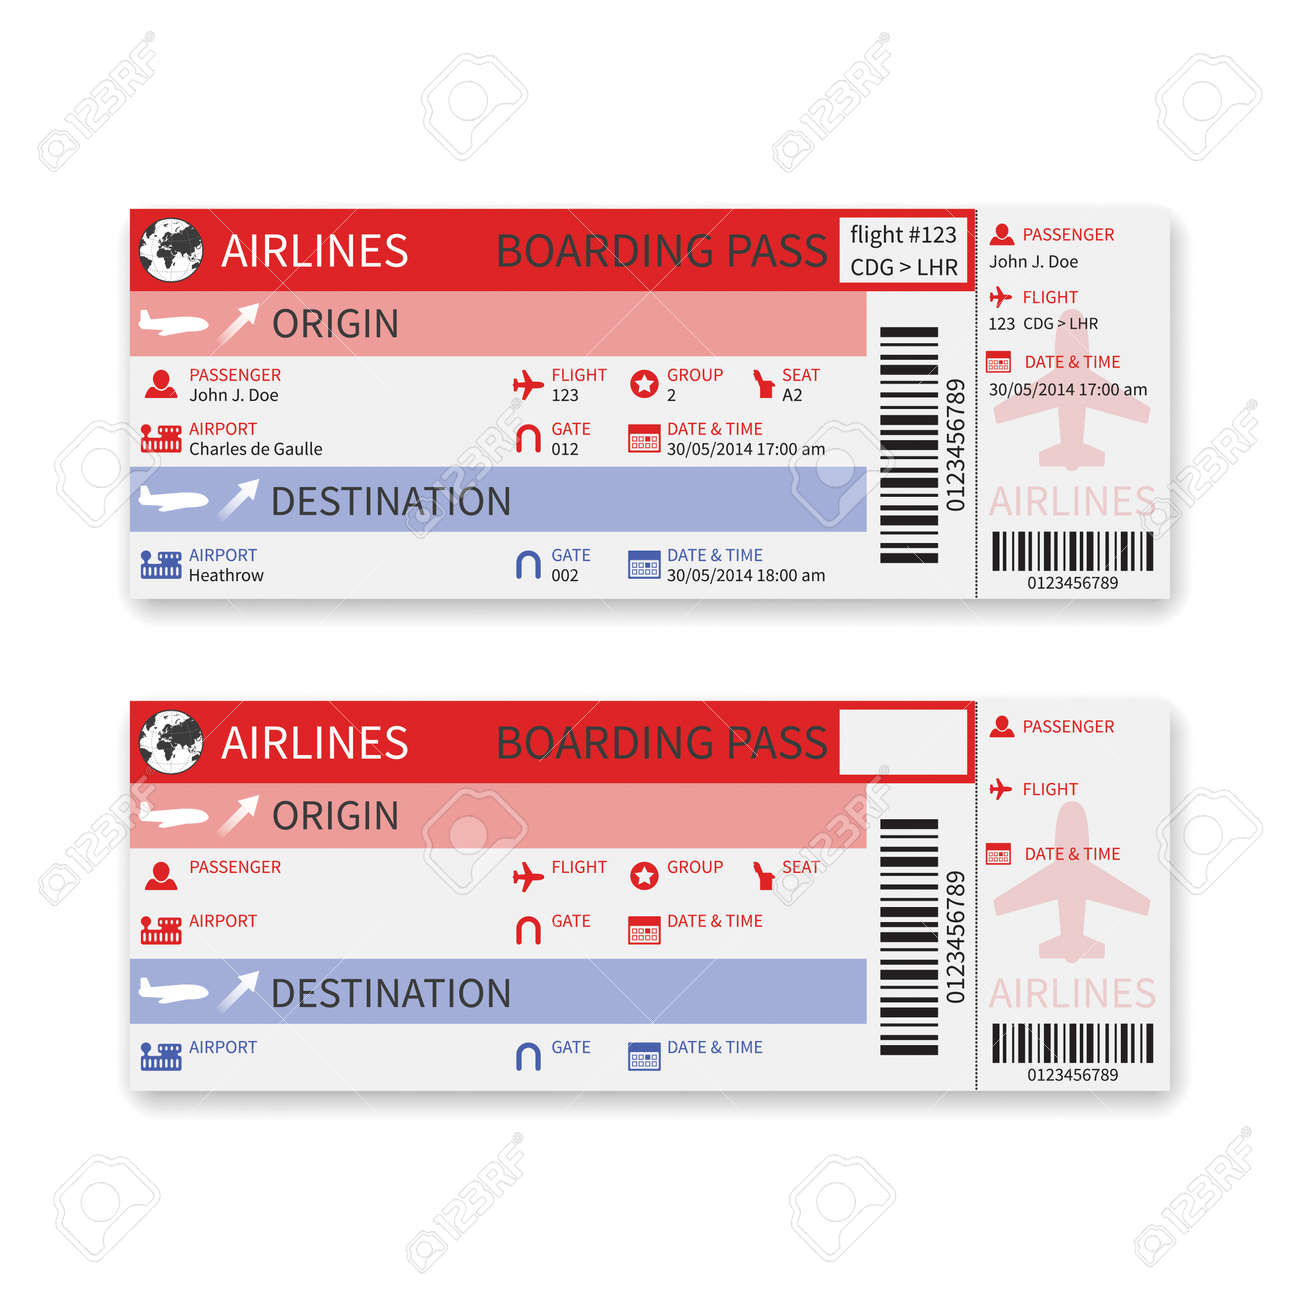 airline boarding pass ticket isolated on white background - 30006697